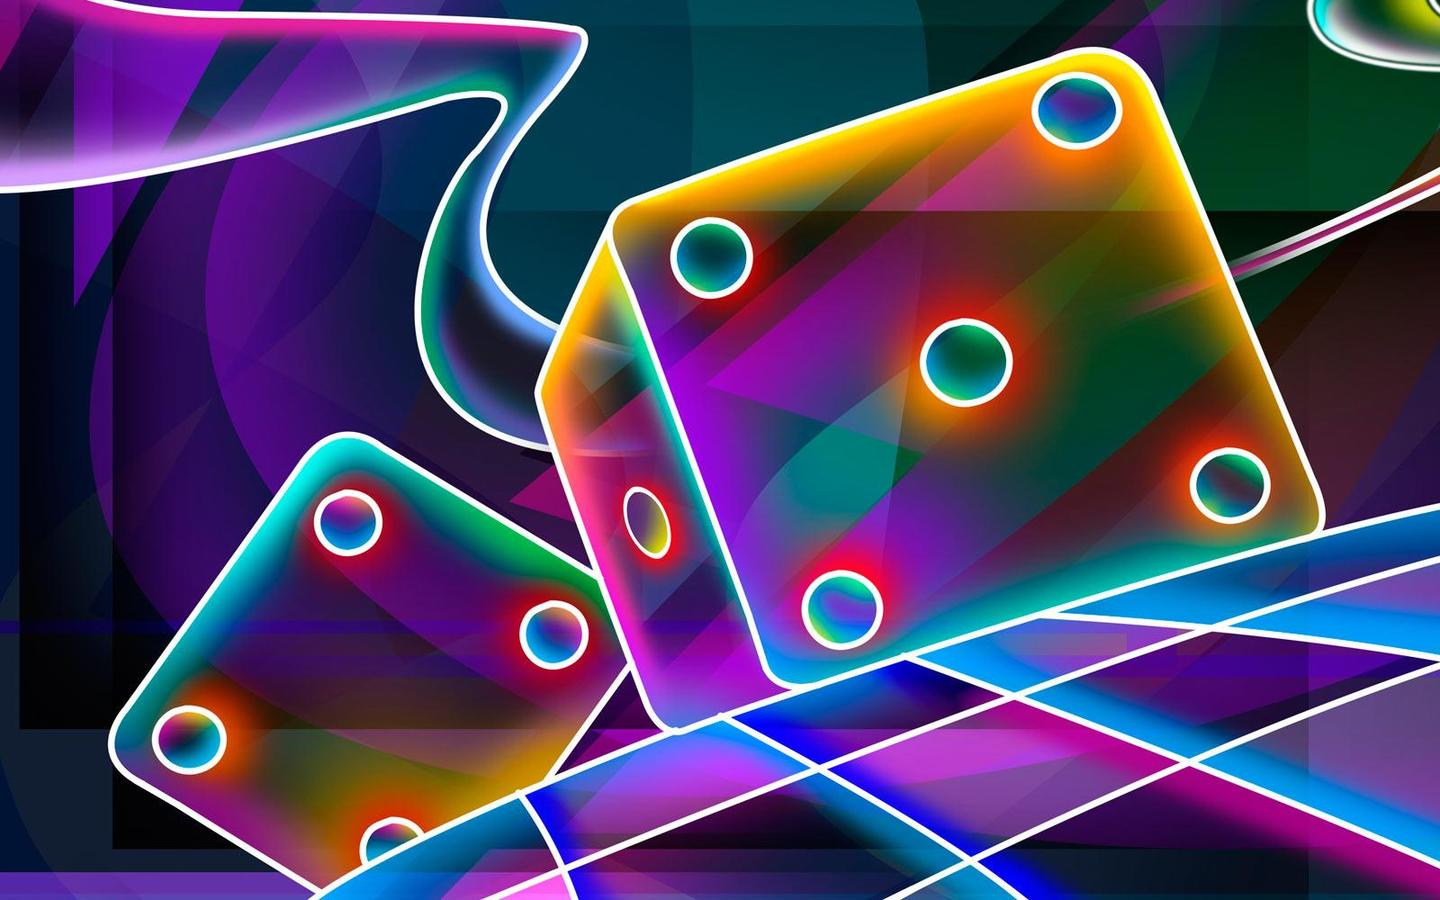 Cool neon wallpaper   SF Wallpaper 1440x900